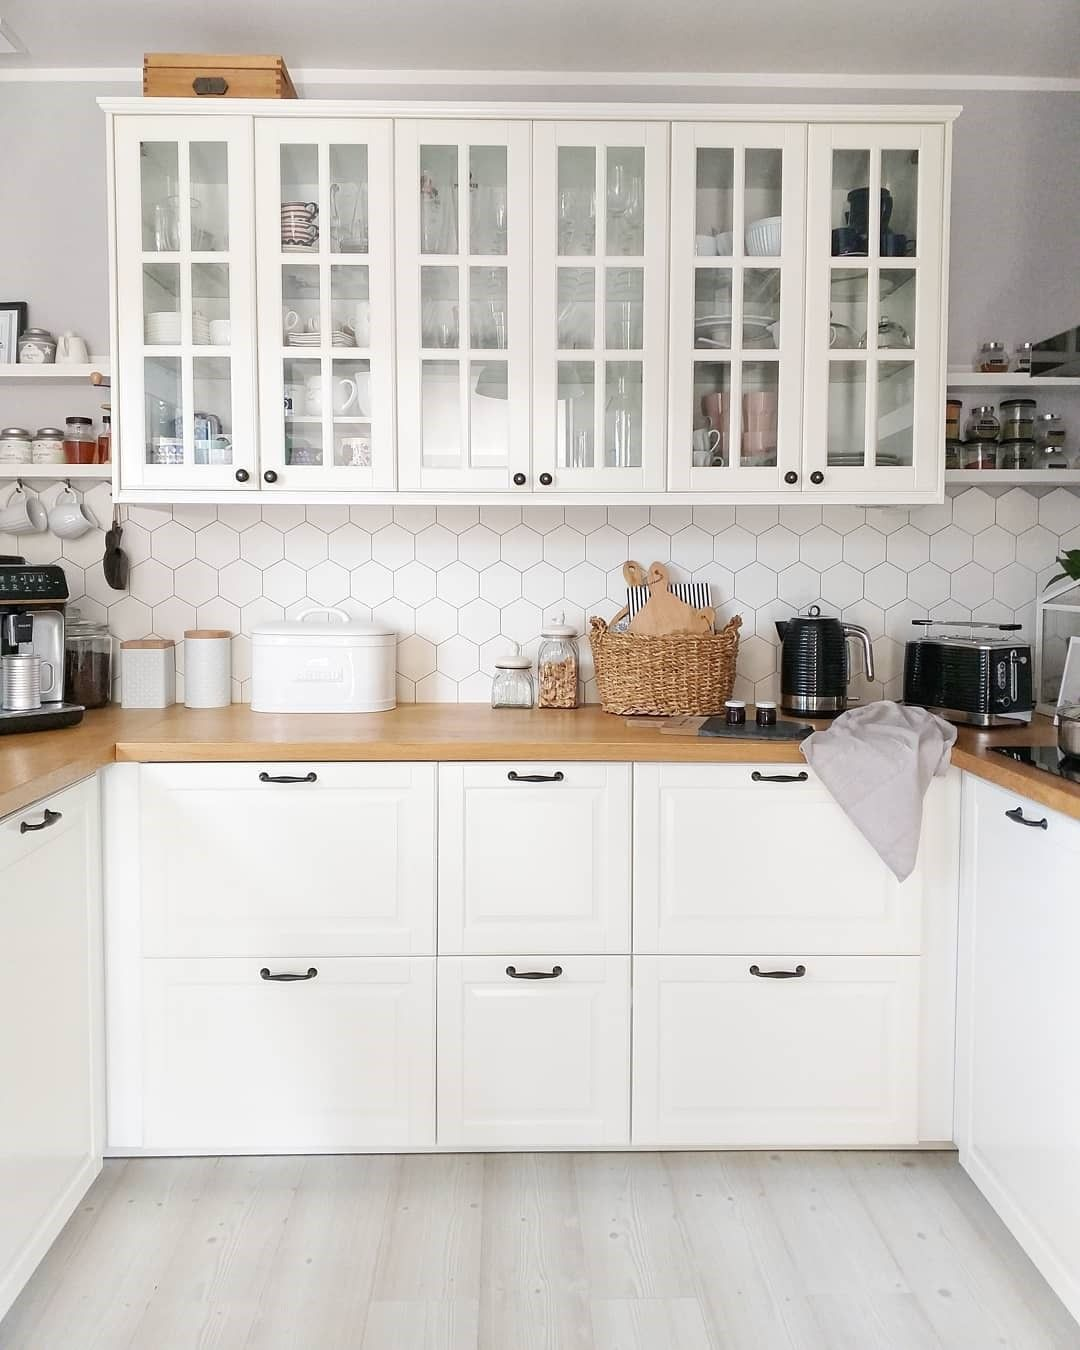 2 760 Likes 30 Comments Ikea Australia Ikea Australia On Instagram The Lacquered Bodbyn Fronts With Their Distin Kitchen Decor Ikea Kitchen New Kitchen